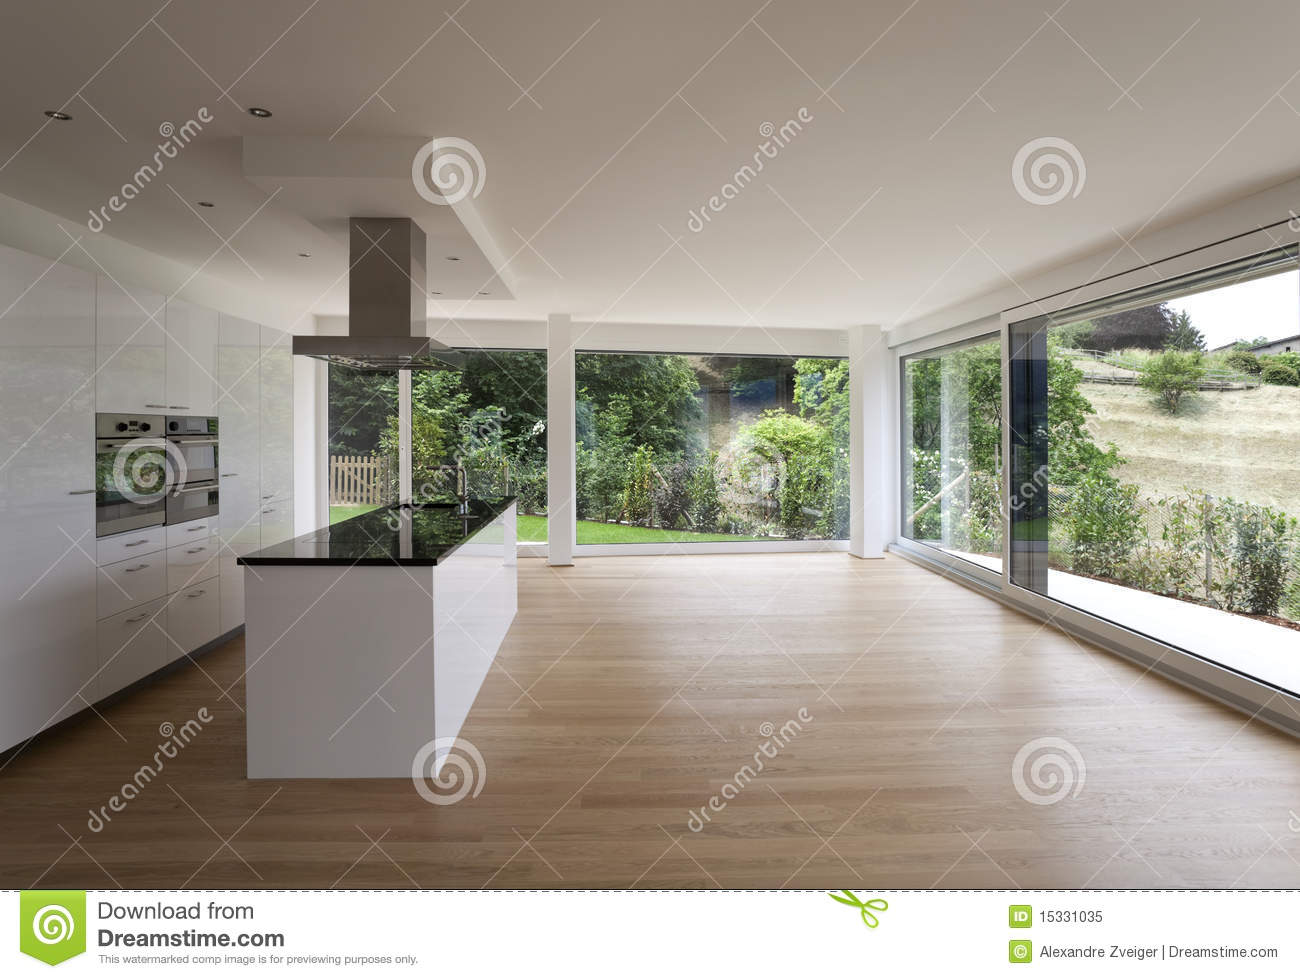 Bel int rieur d 39 une maison moderne image stock image for Photo interieur de maison moderne